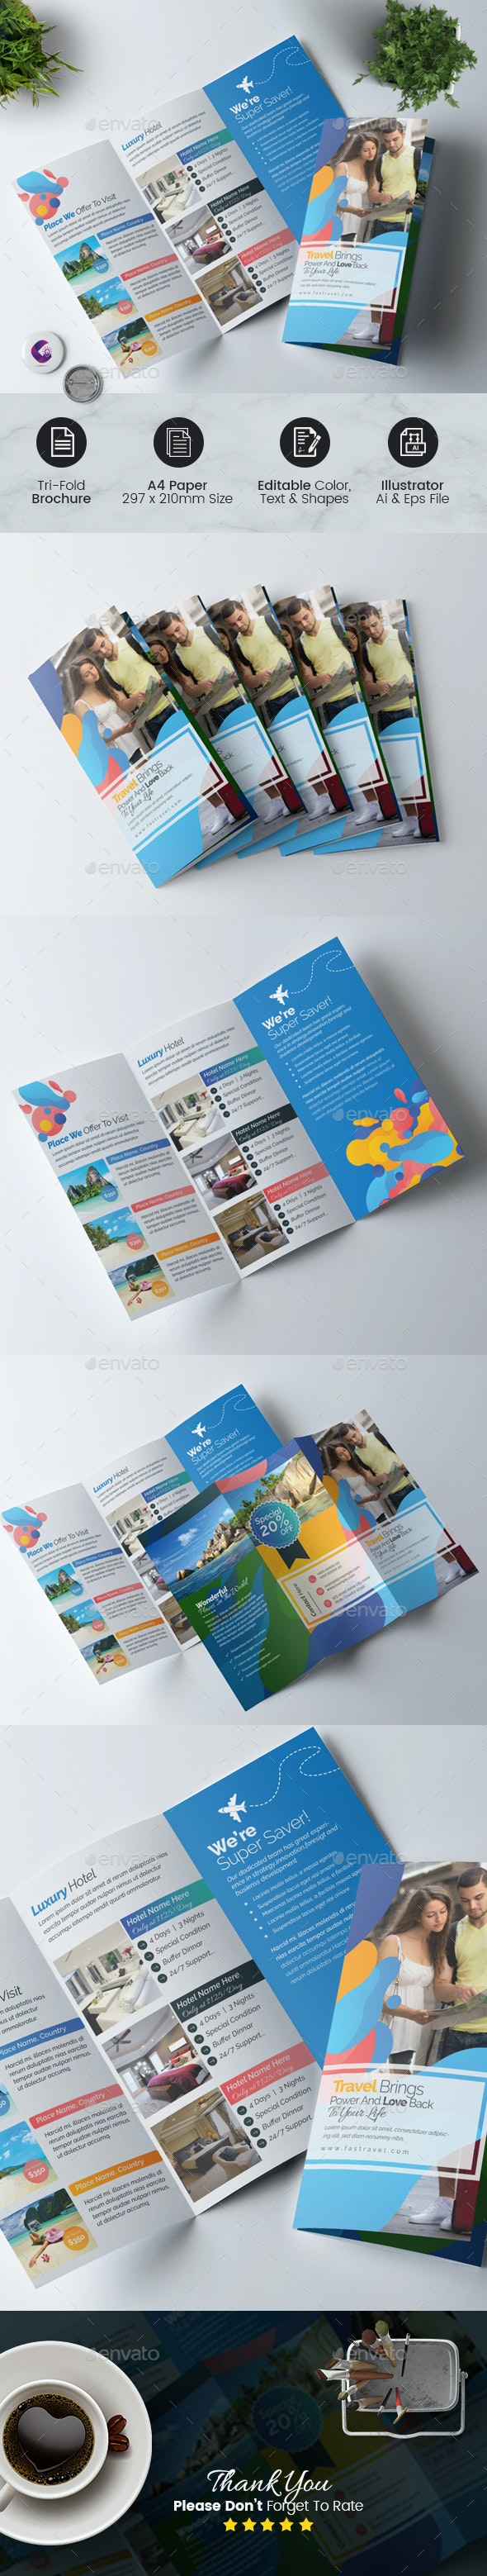 Travel & Hotel booking Trifold Brochure - Corporate Brochures